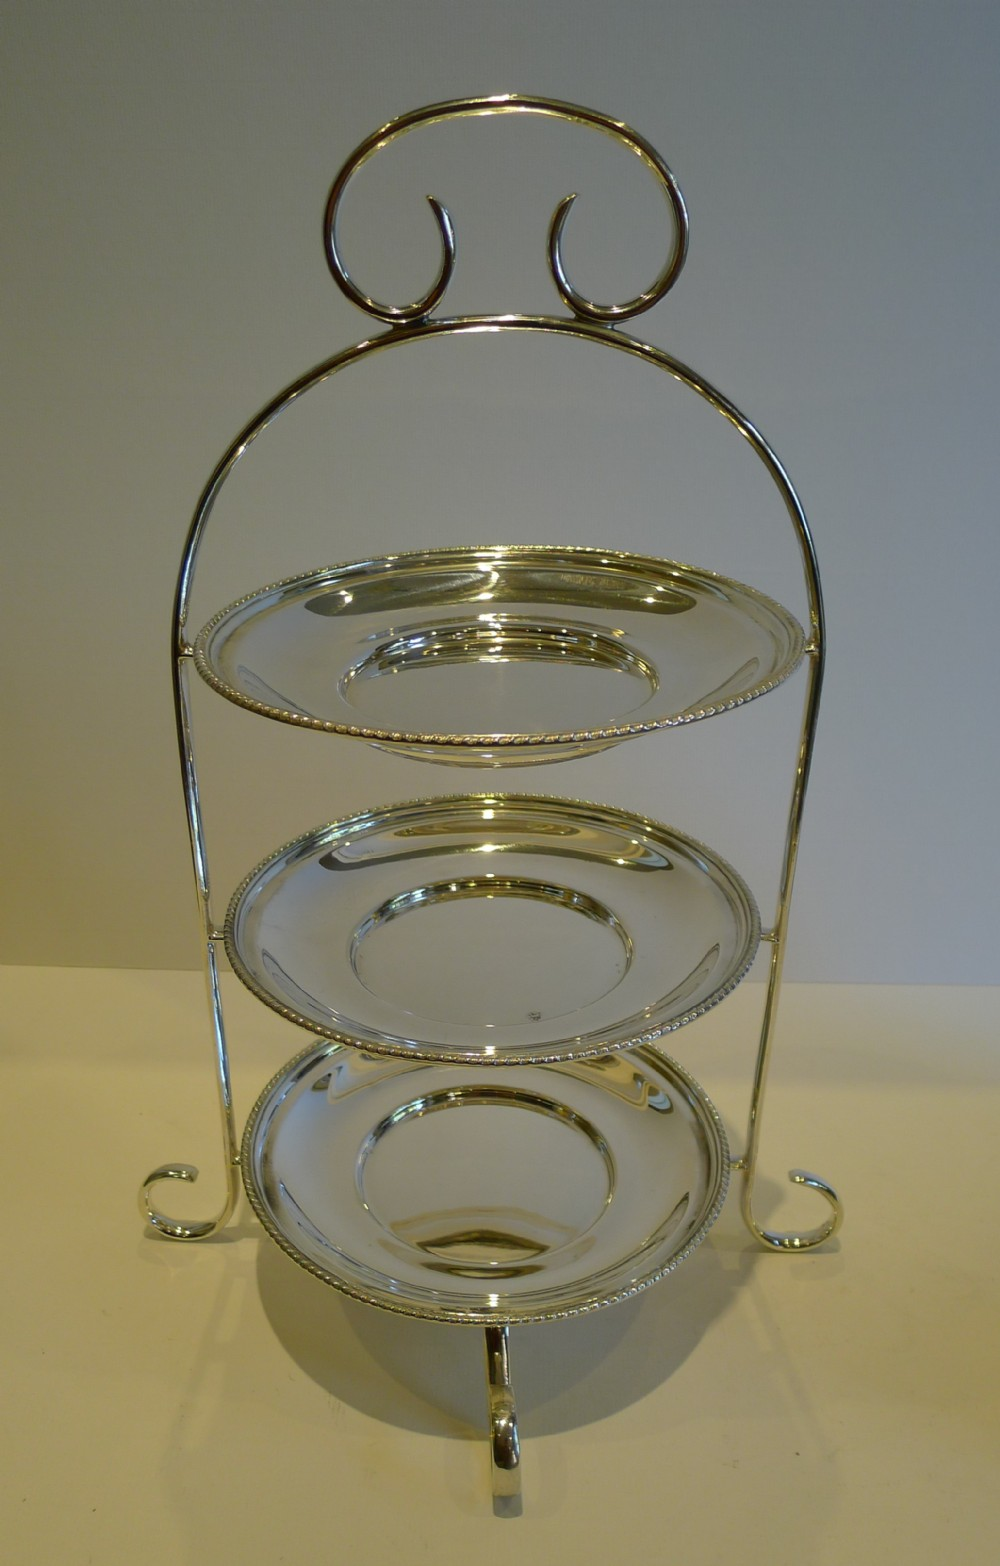 antique english silver plated 3tier cake stand by maxfield sons c1890 & Antique English Silver Plated 3-tier Cake Stand By Maxfield \u0026 Sons C ...